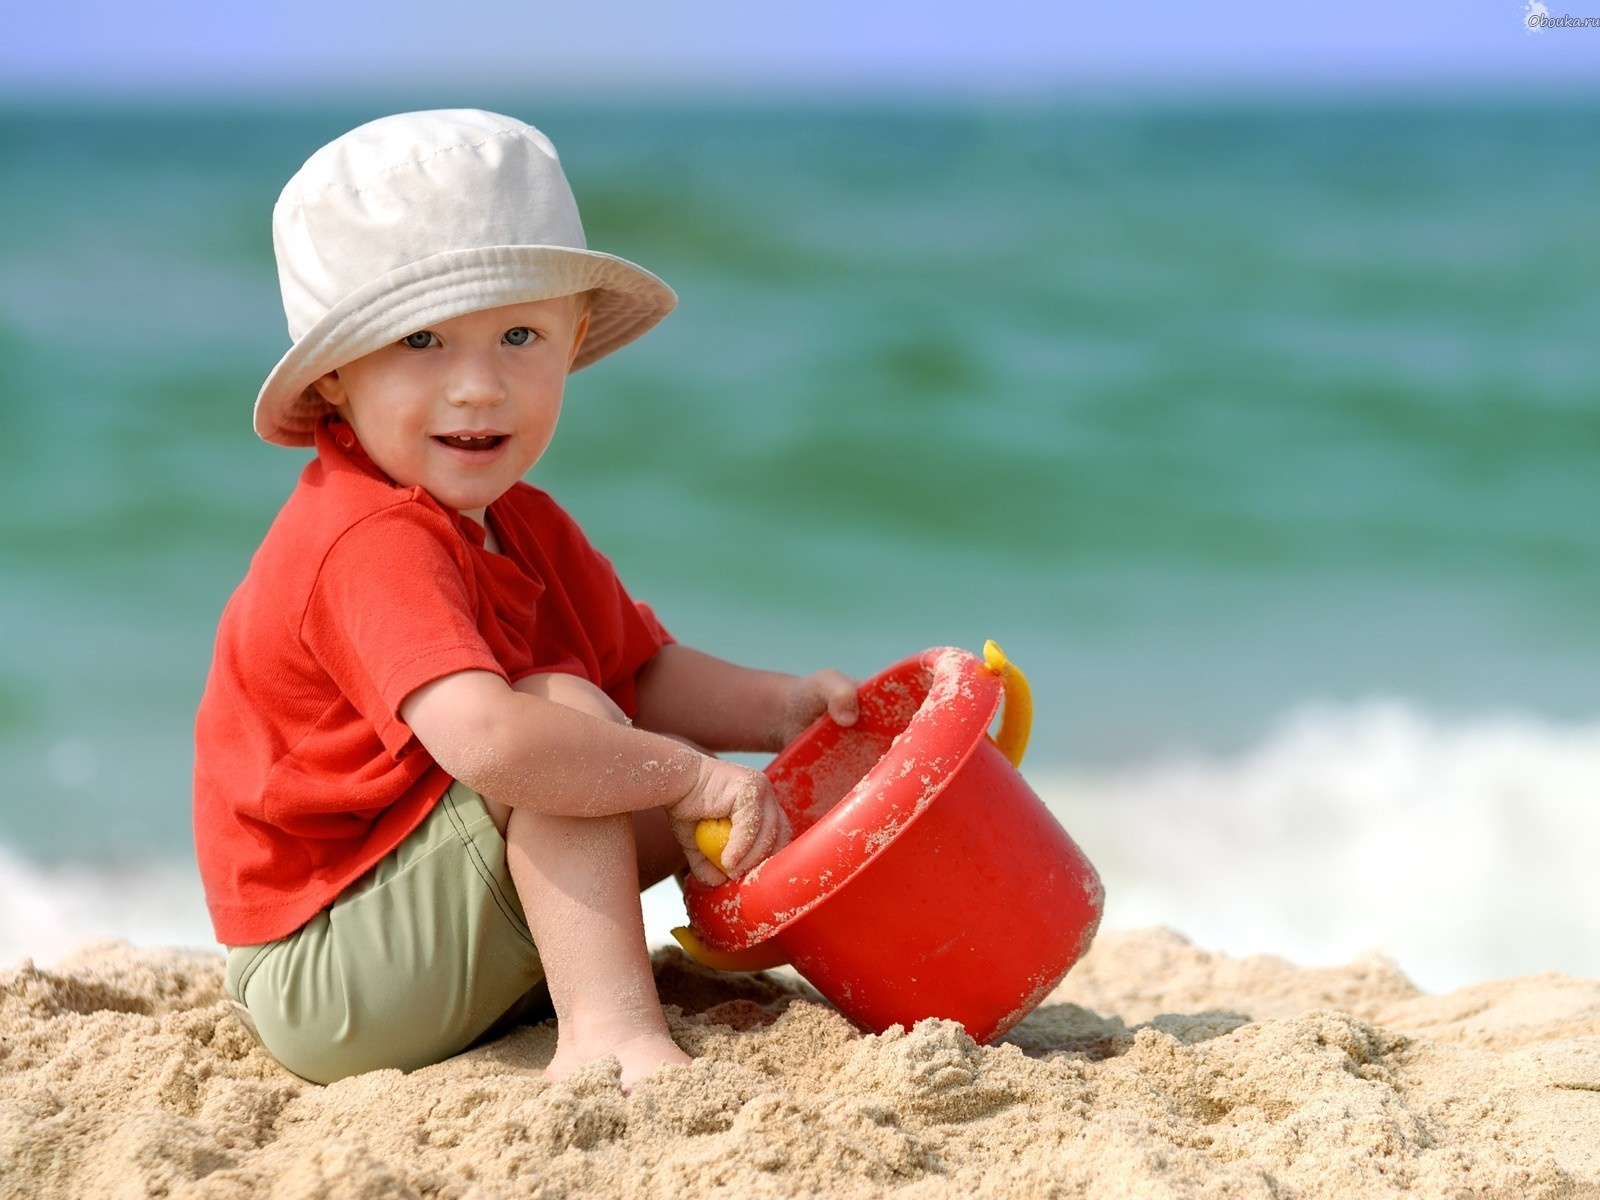 Baby boy playing on beach sand 1600 x 1200 download close